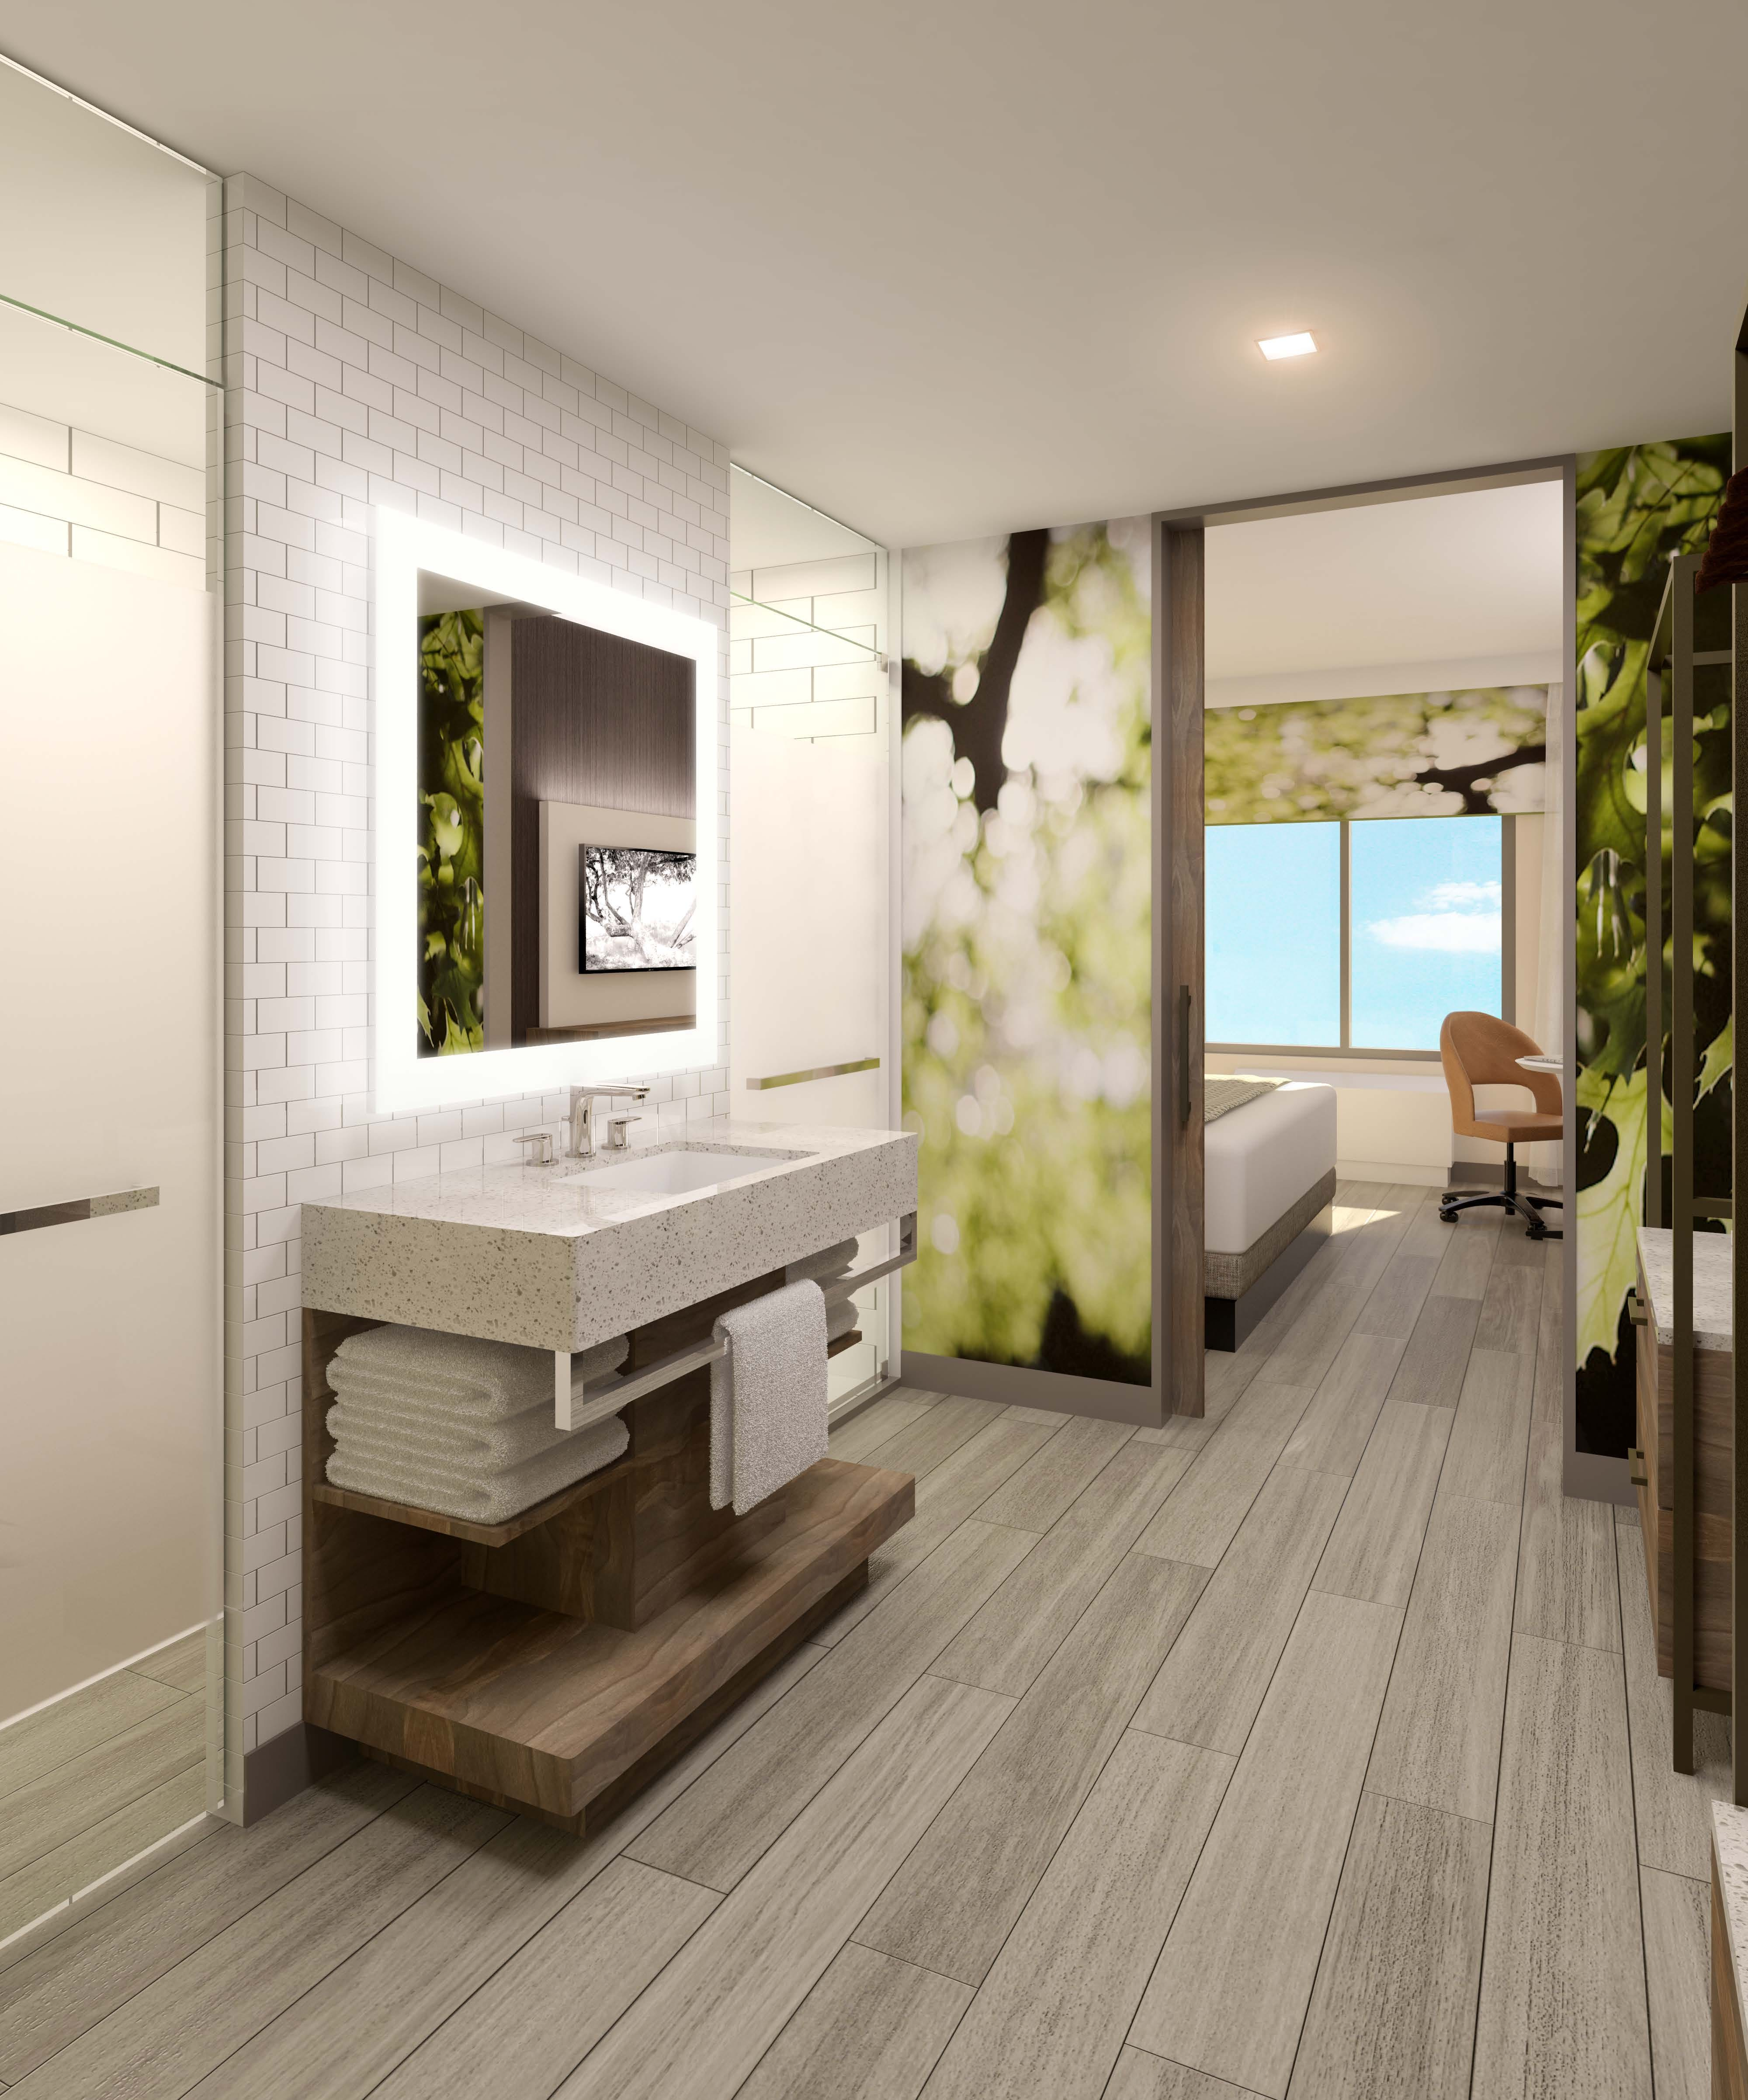 Hotel bathrooms New amenities upgrade guest experience